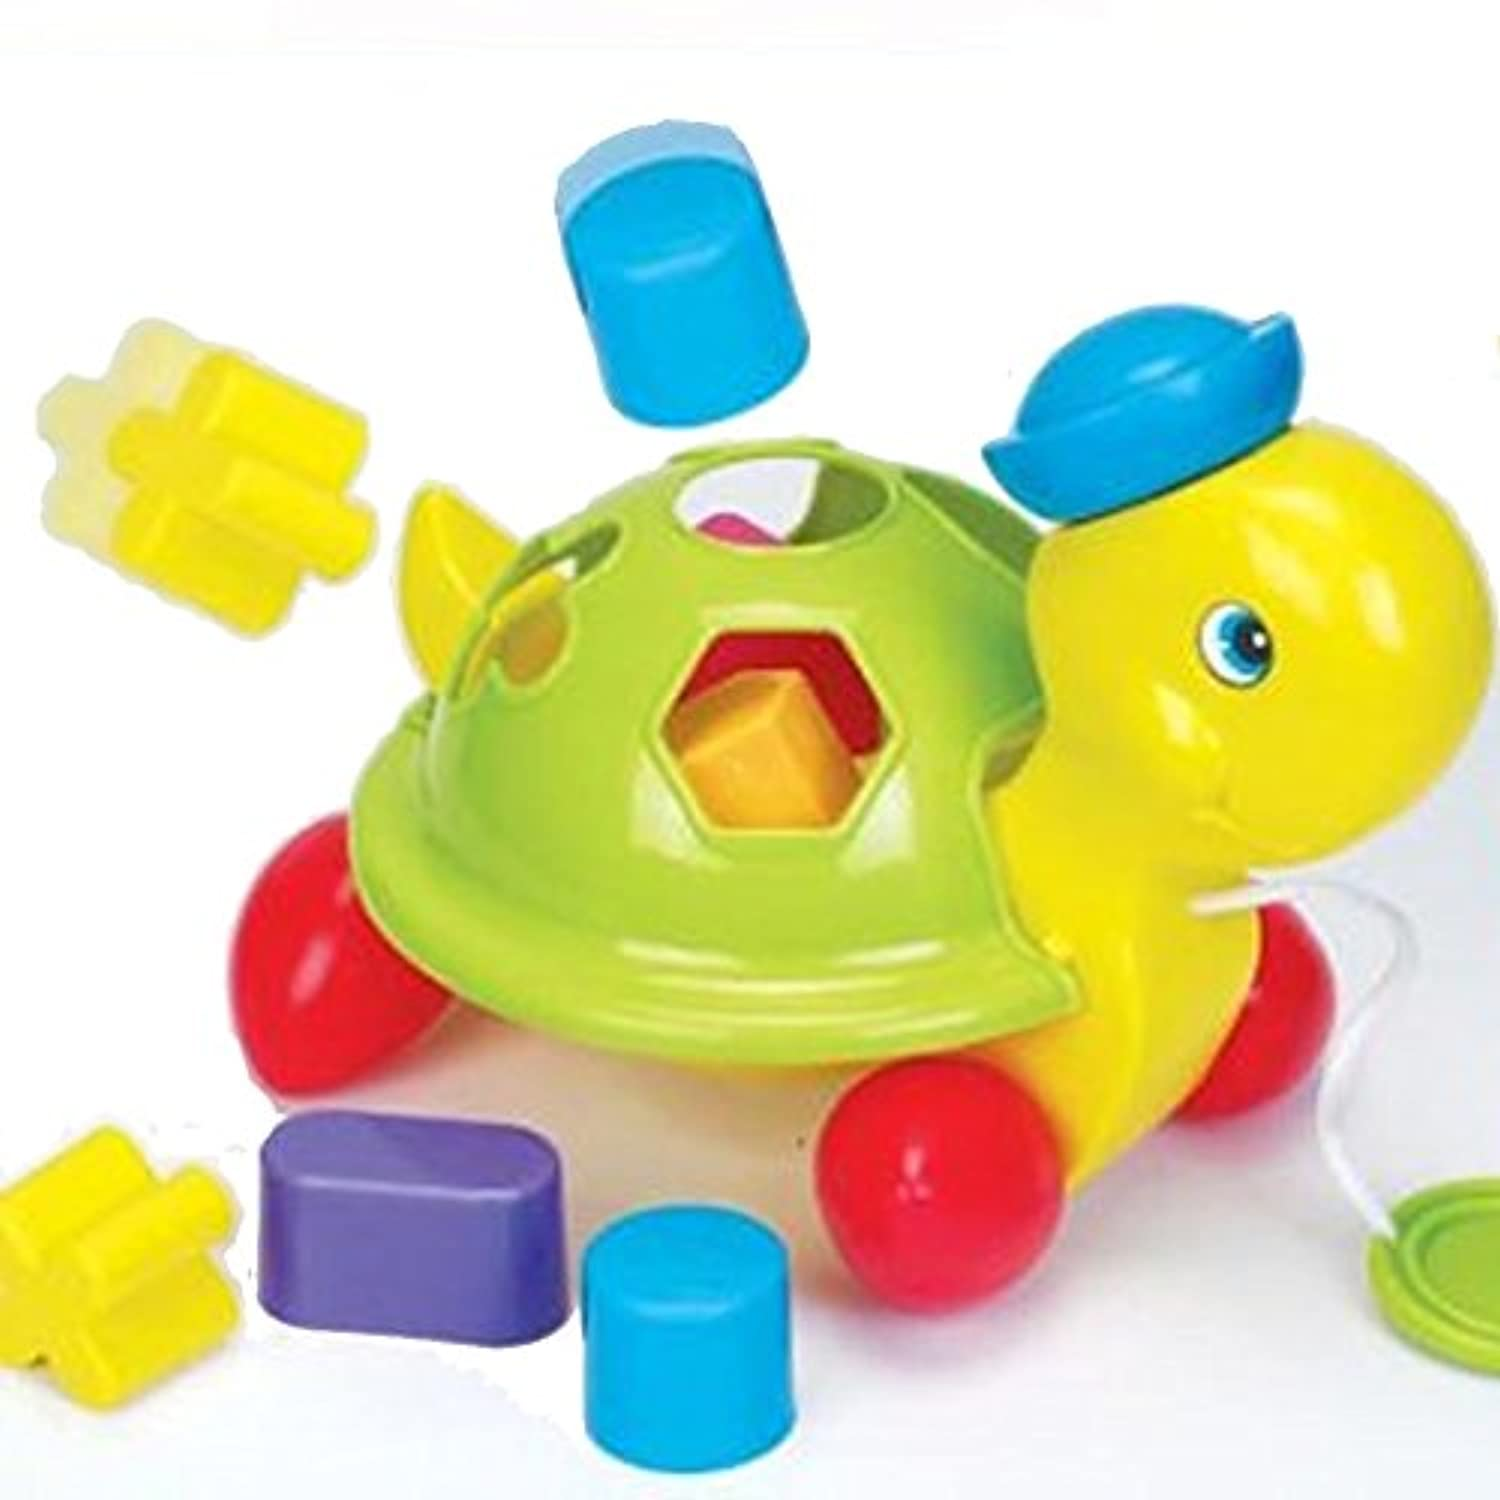 Funtime Turtle Shape Sorter Pull Along Learn and Playベビーおもちゃ12 +ヶ月